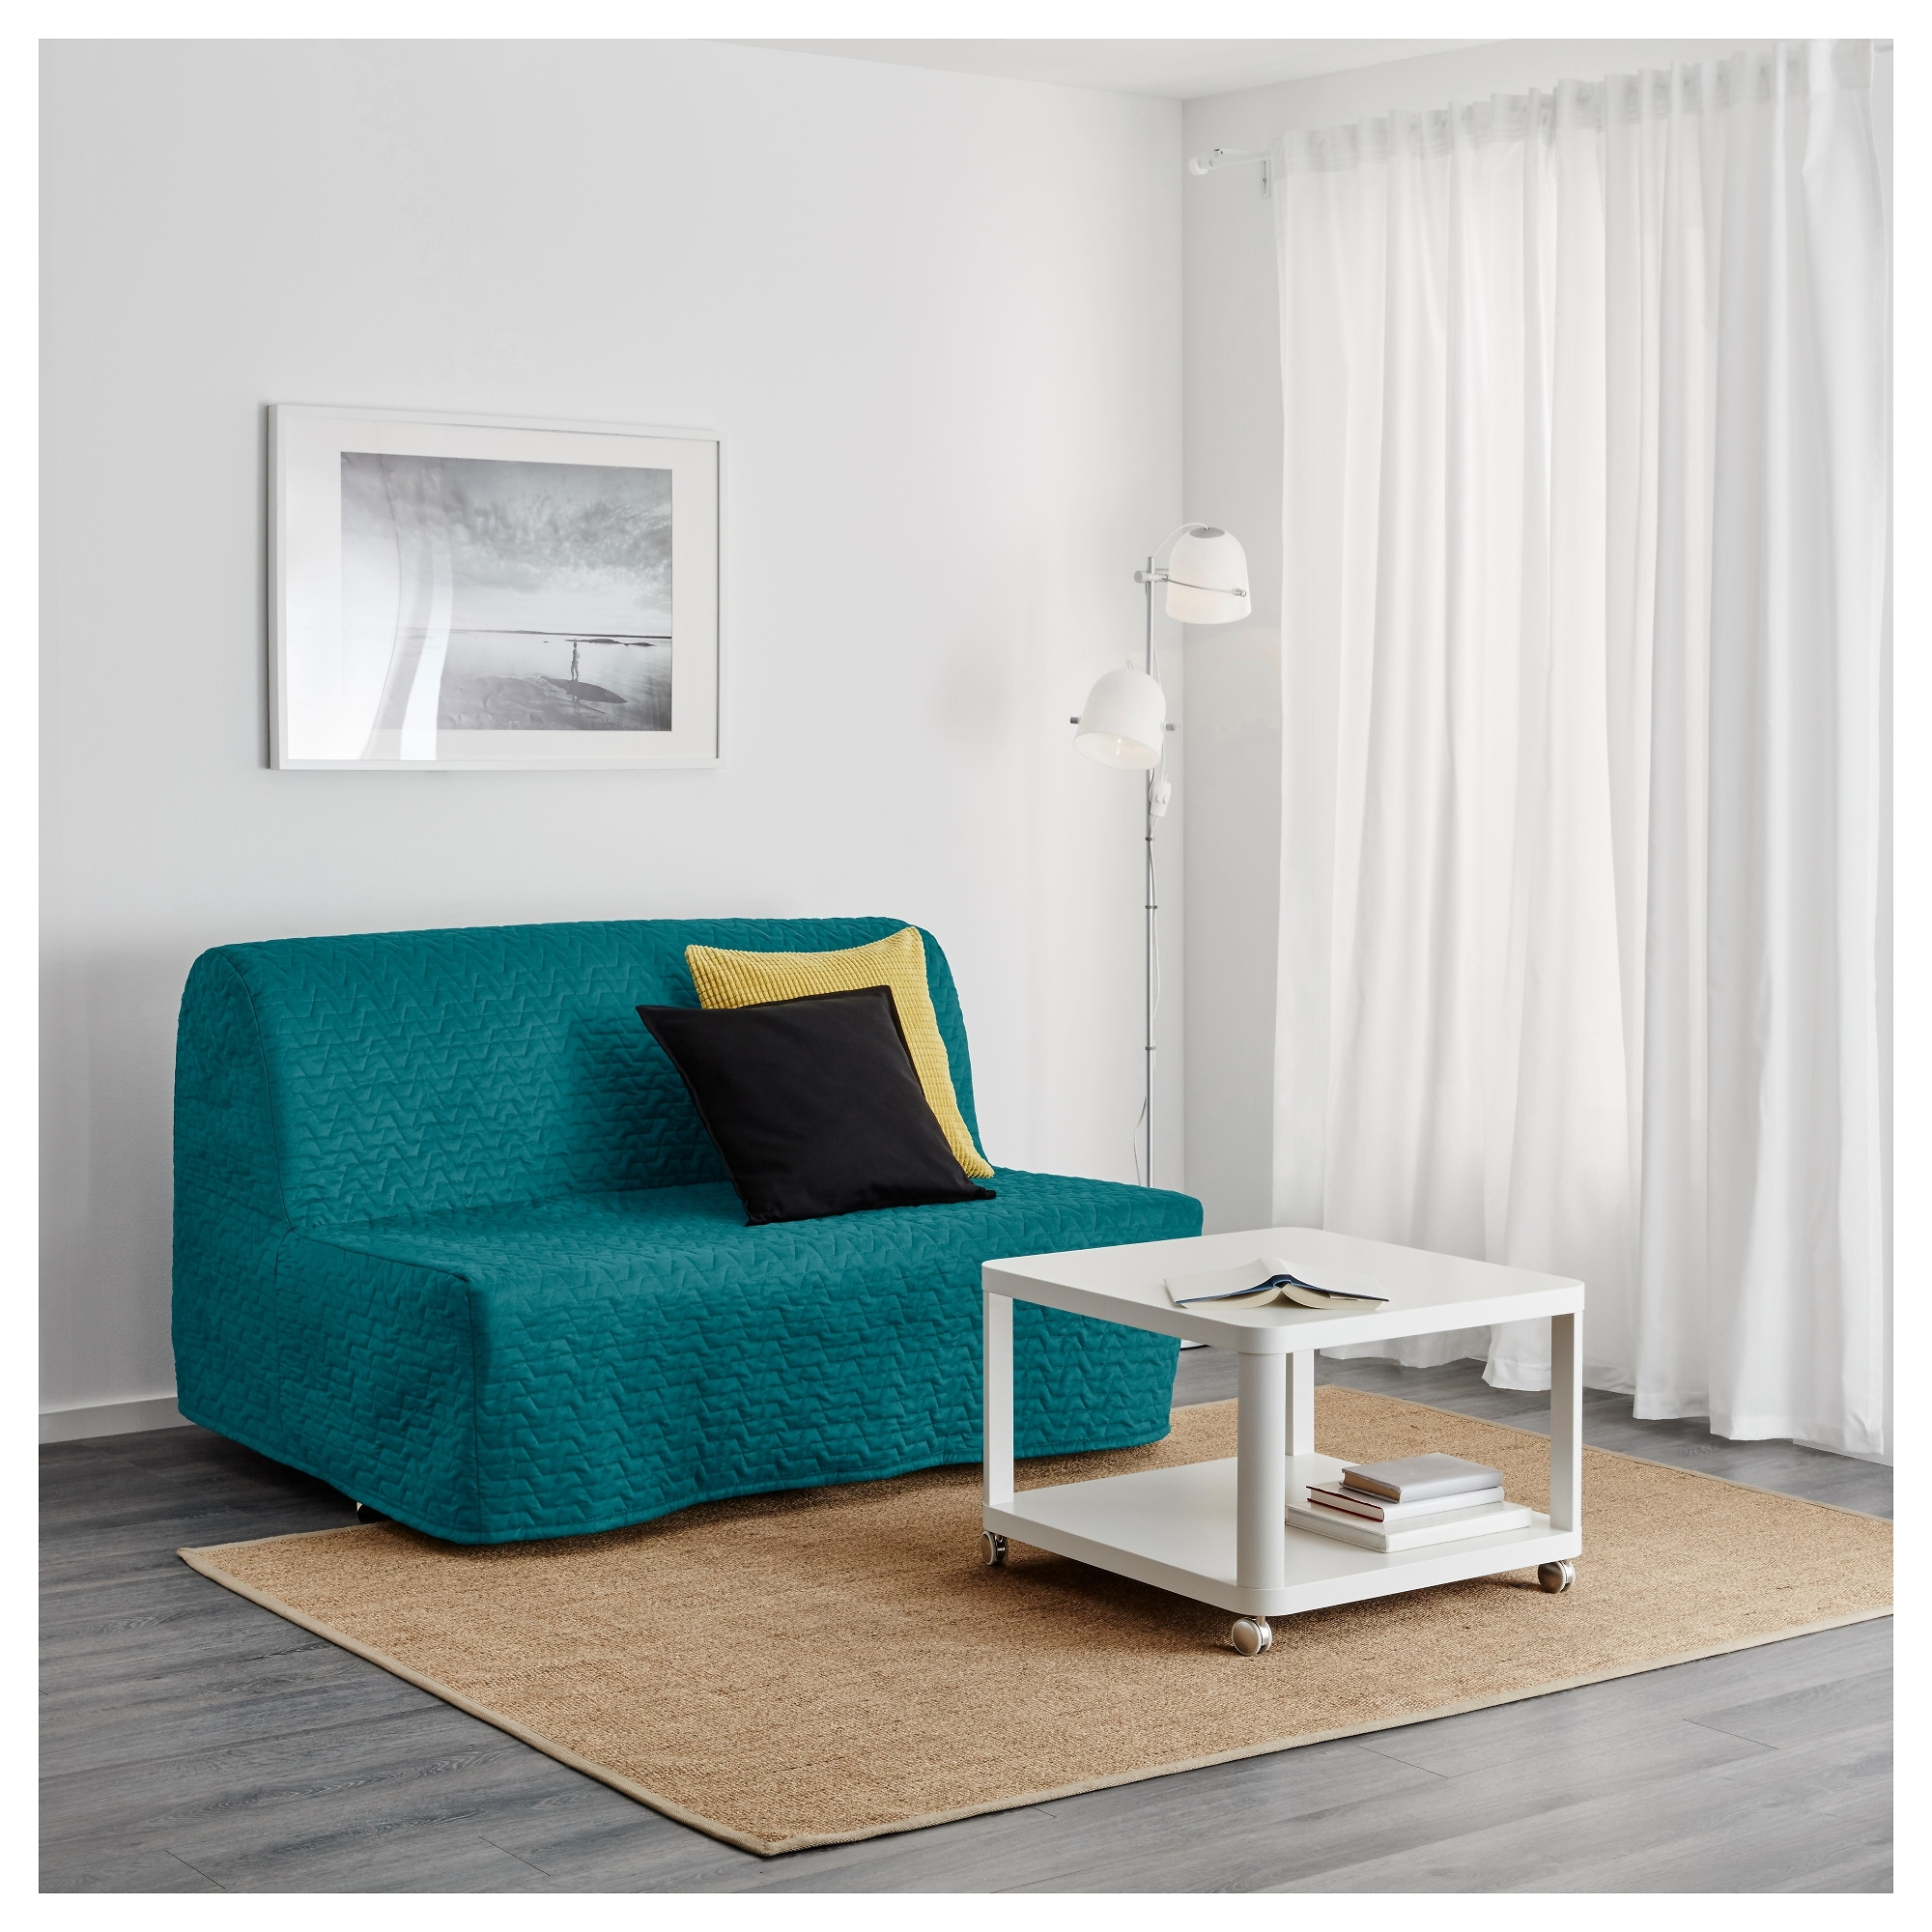 Widely Used Turquoise Sofas Within Lycksele Lövås Sleeper Sofa – Ransta White – Ikea (View 12 of 20)